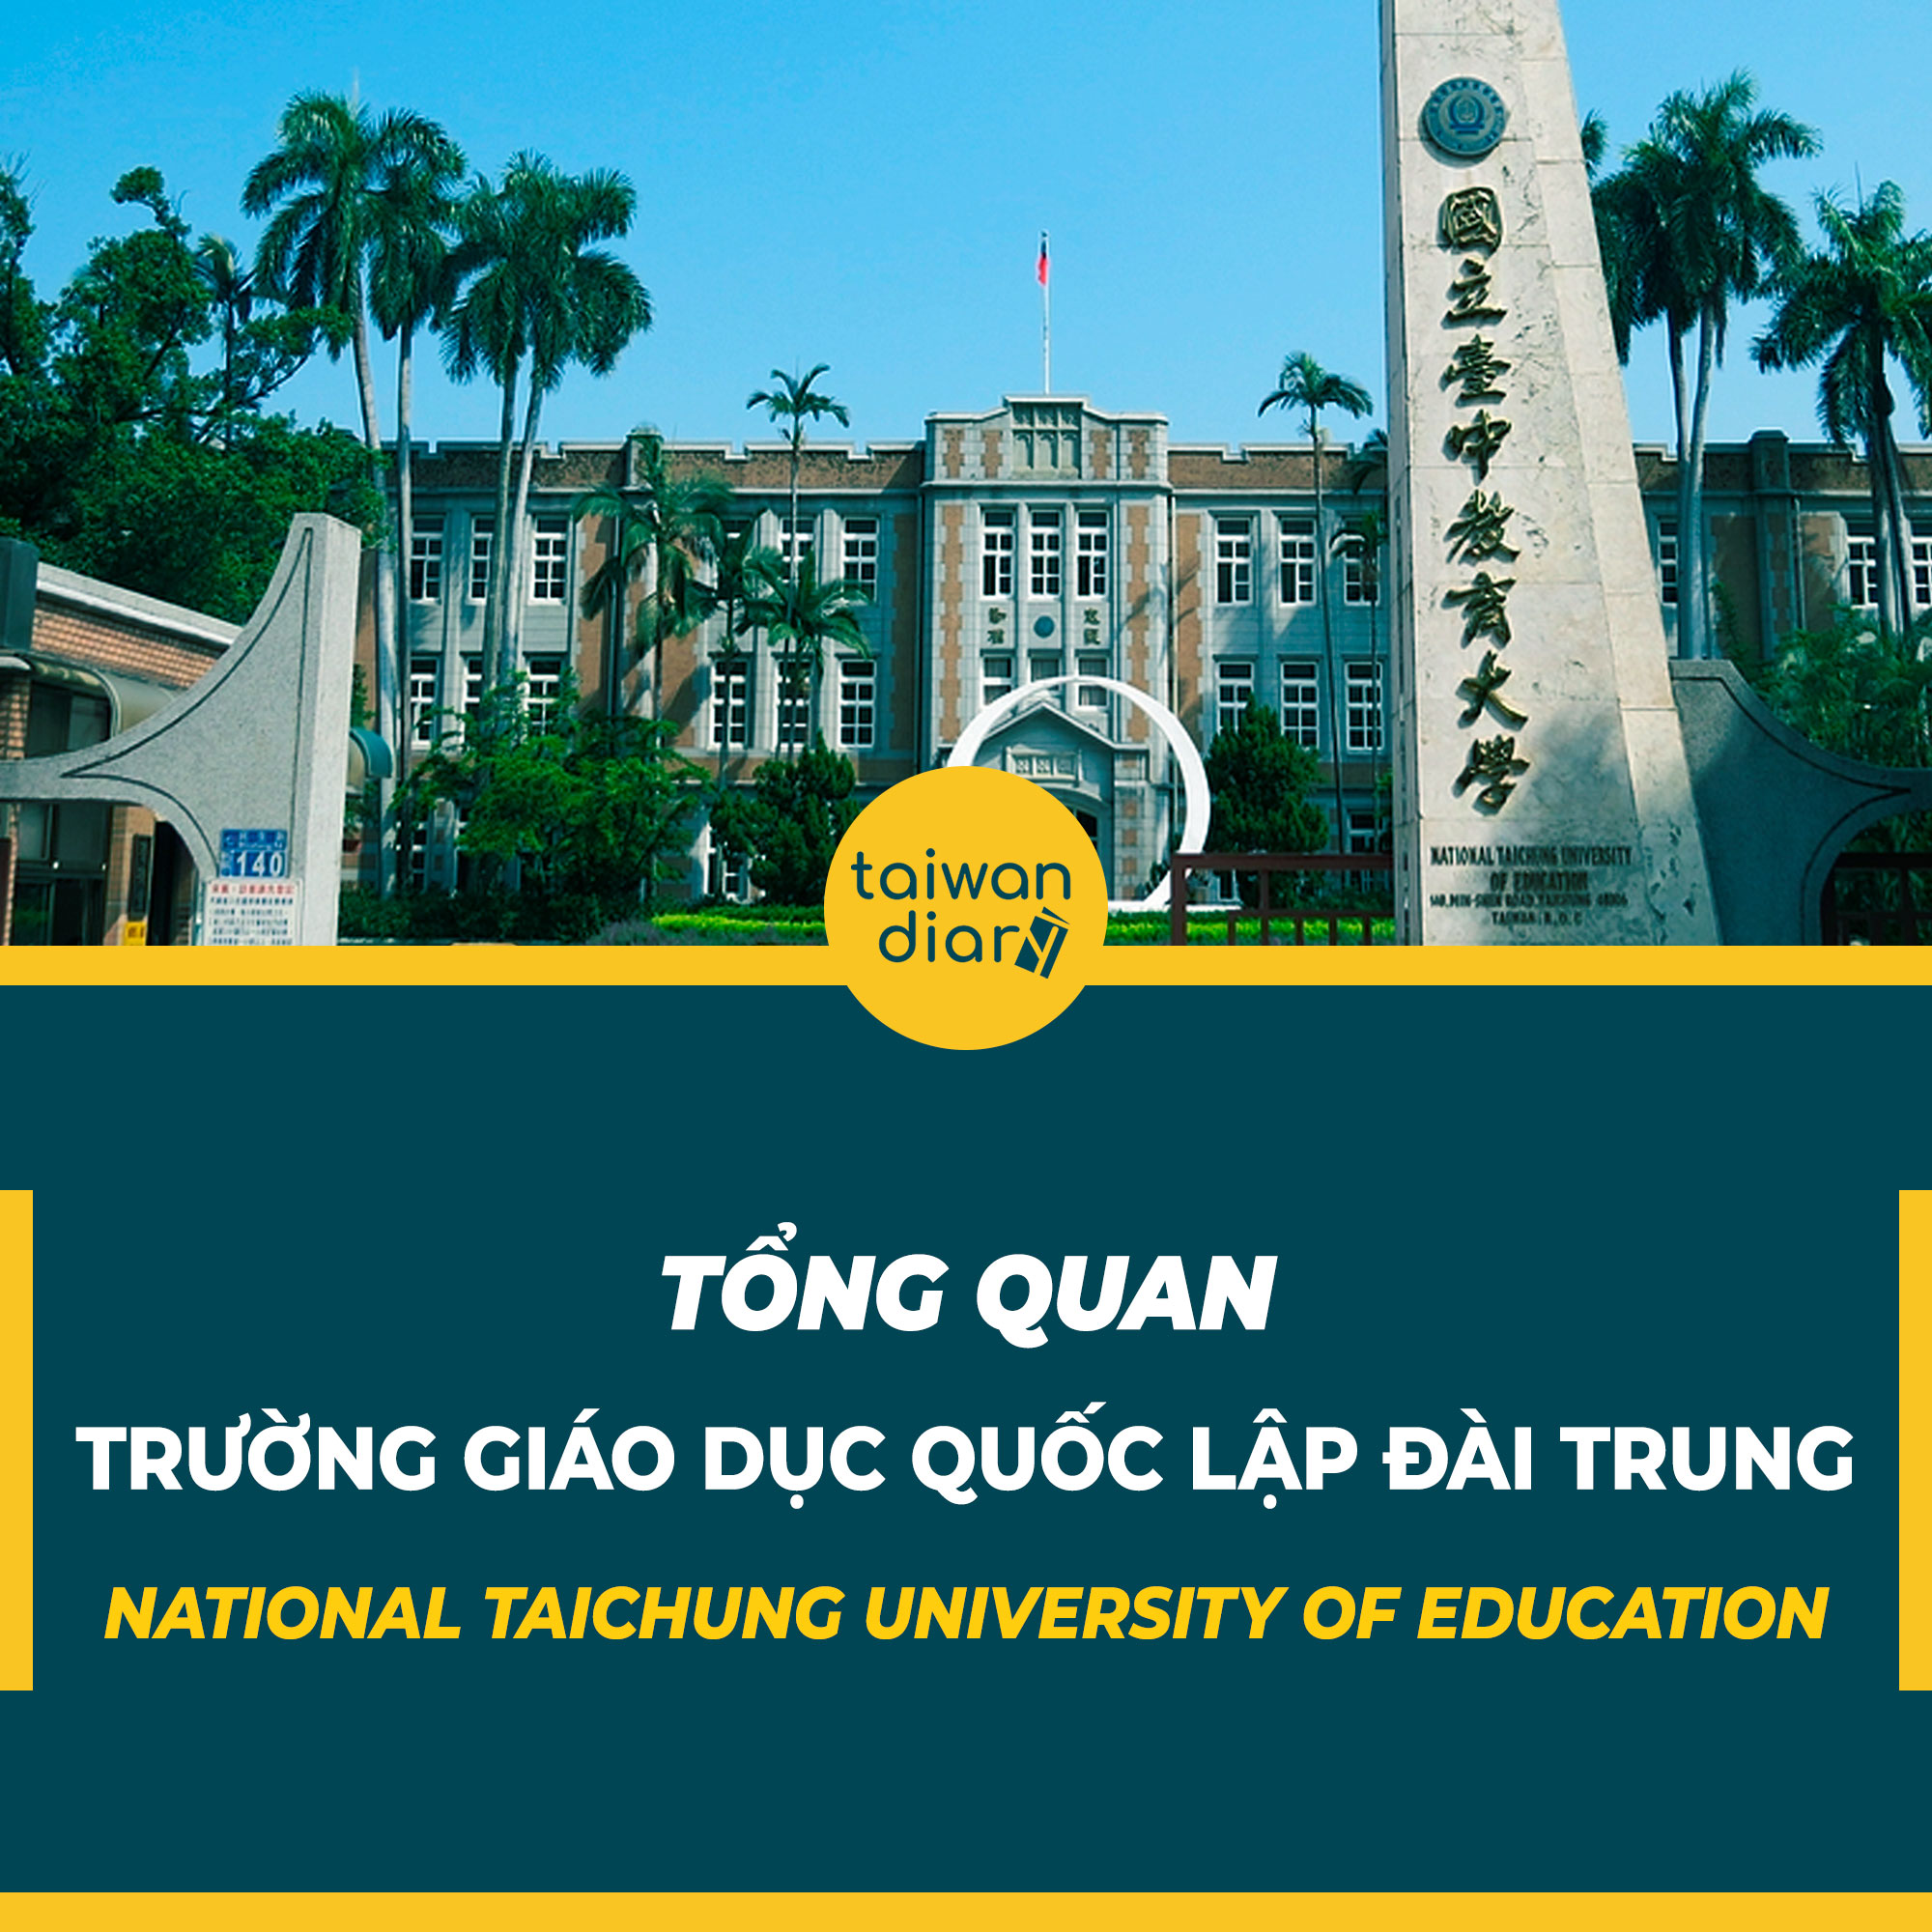 National-Taichung-University-of-Education-(NTCU)